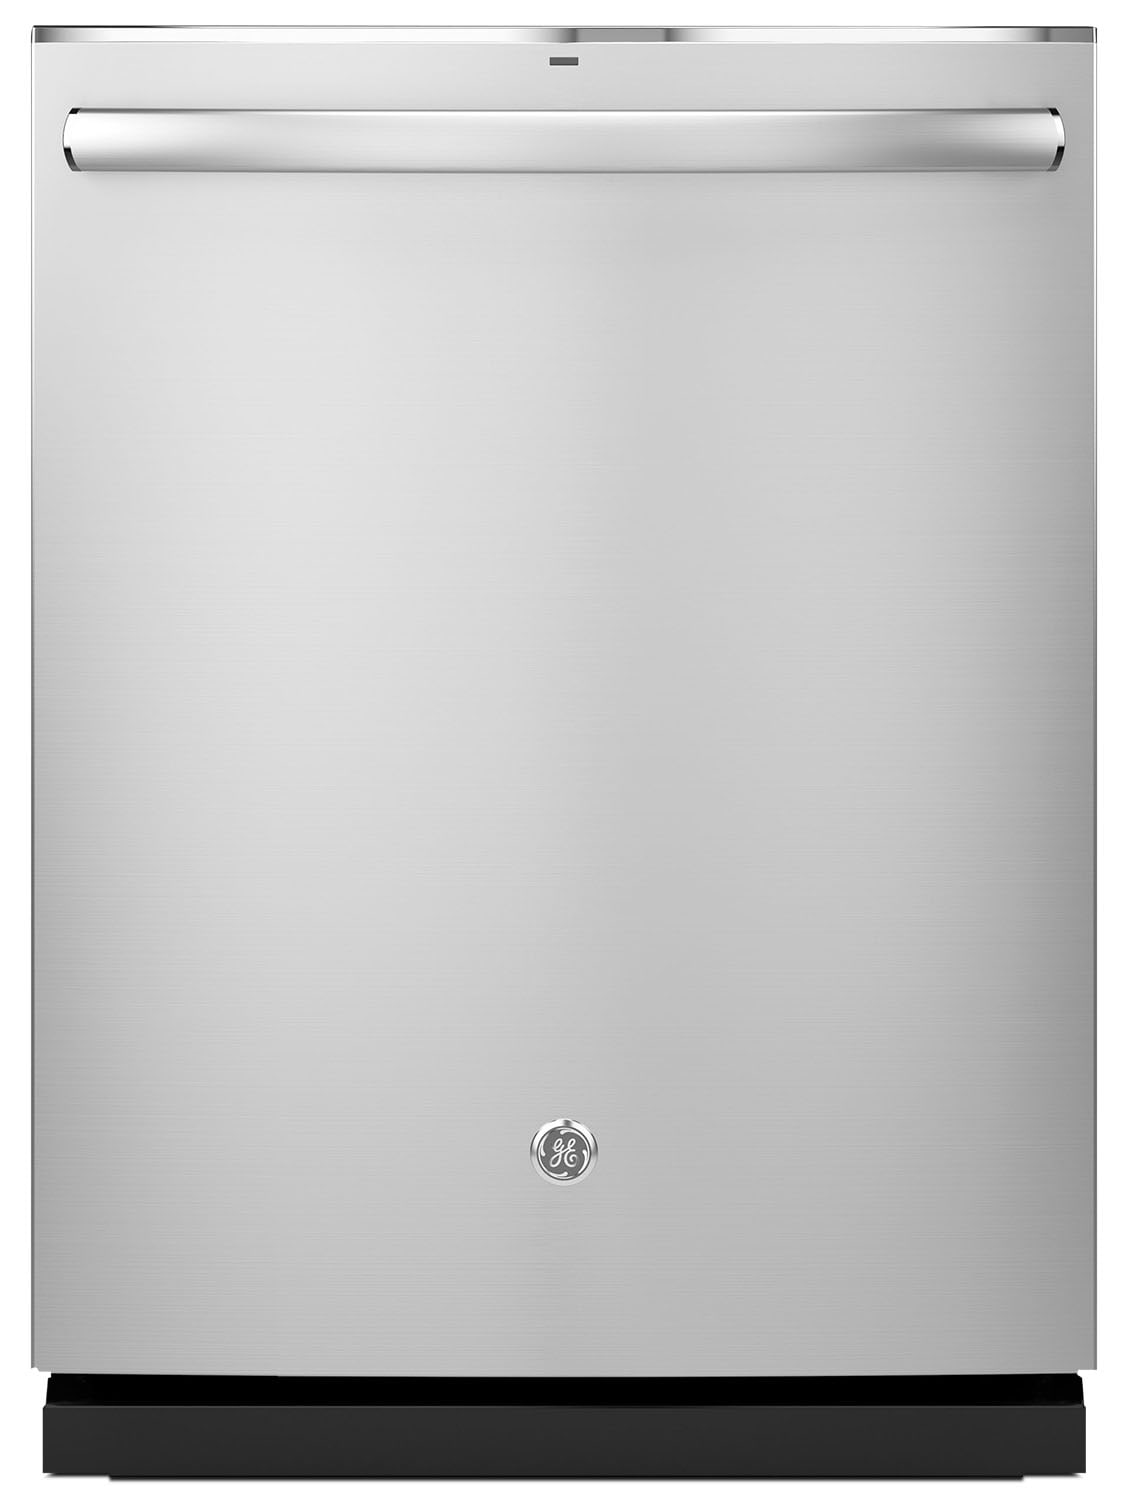 Clean-Up - GE Built-In Tall-Tub Dishwasher with Hidden Controls – PDT825SSJSS